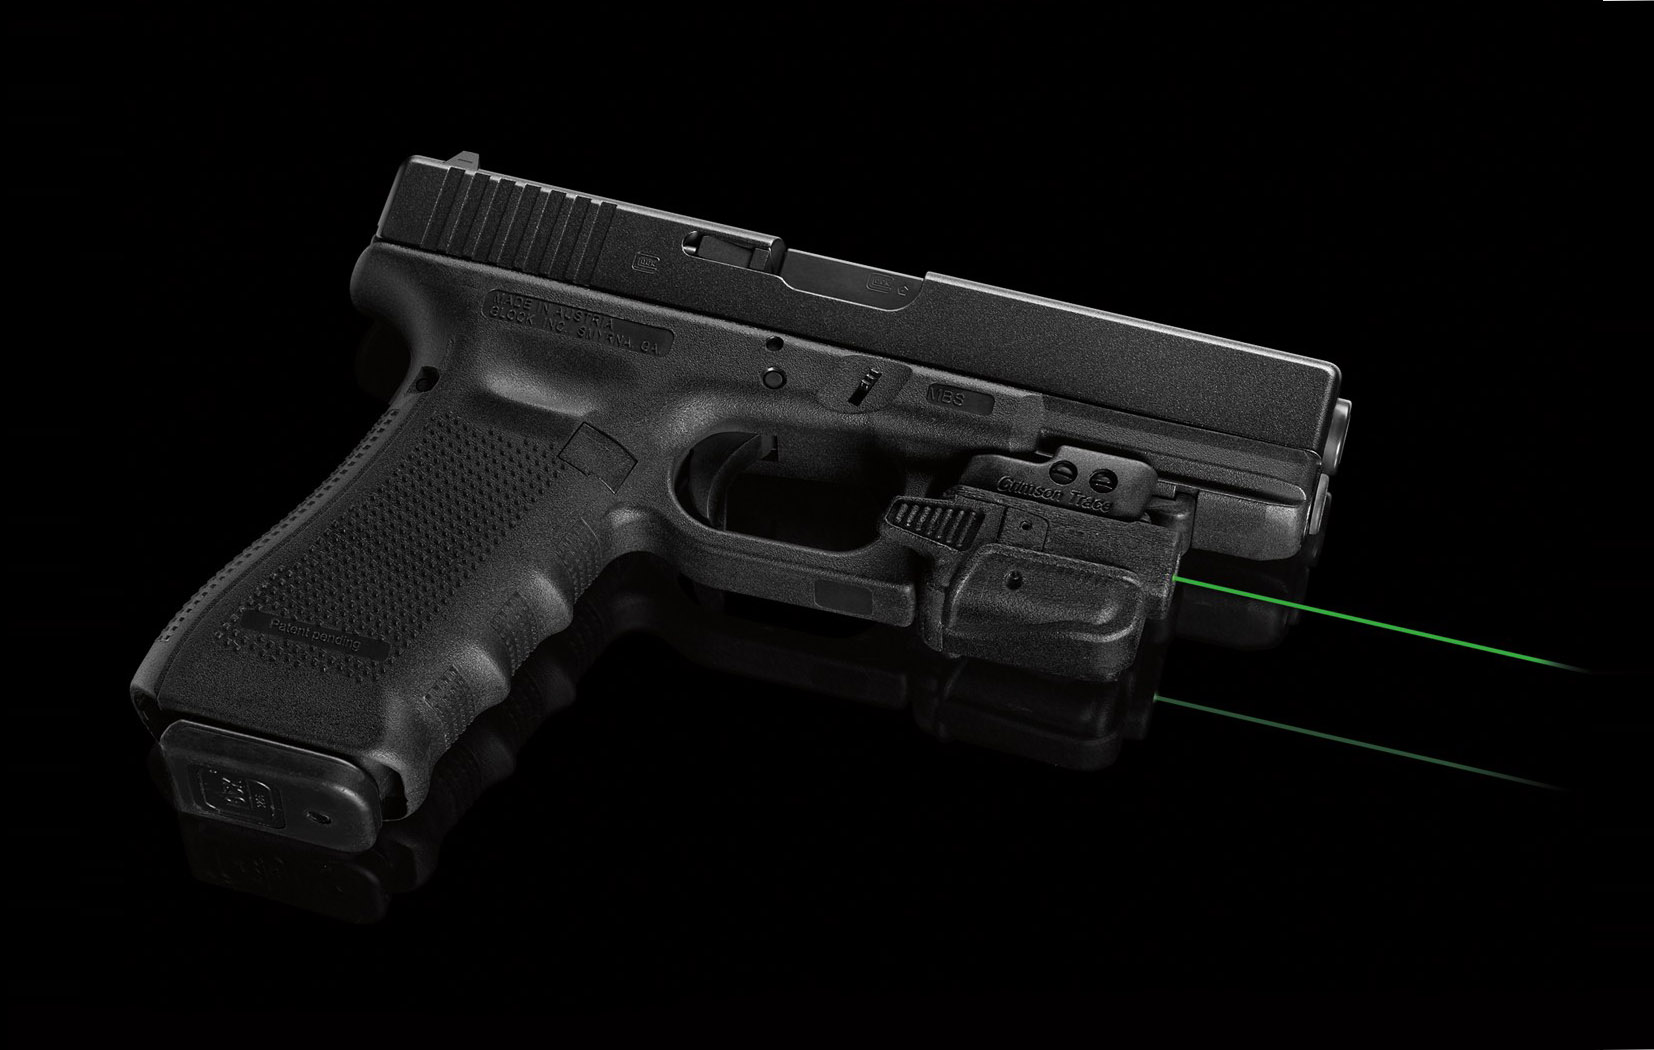 The Crimson Trace CMR-203 Green Laser Sight on a Gen 4 Glock